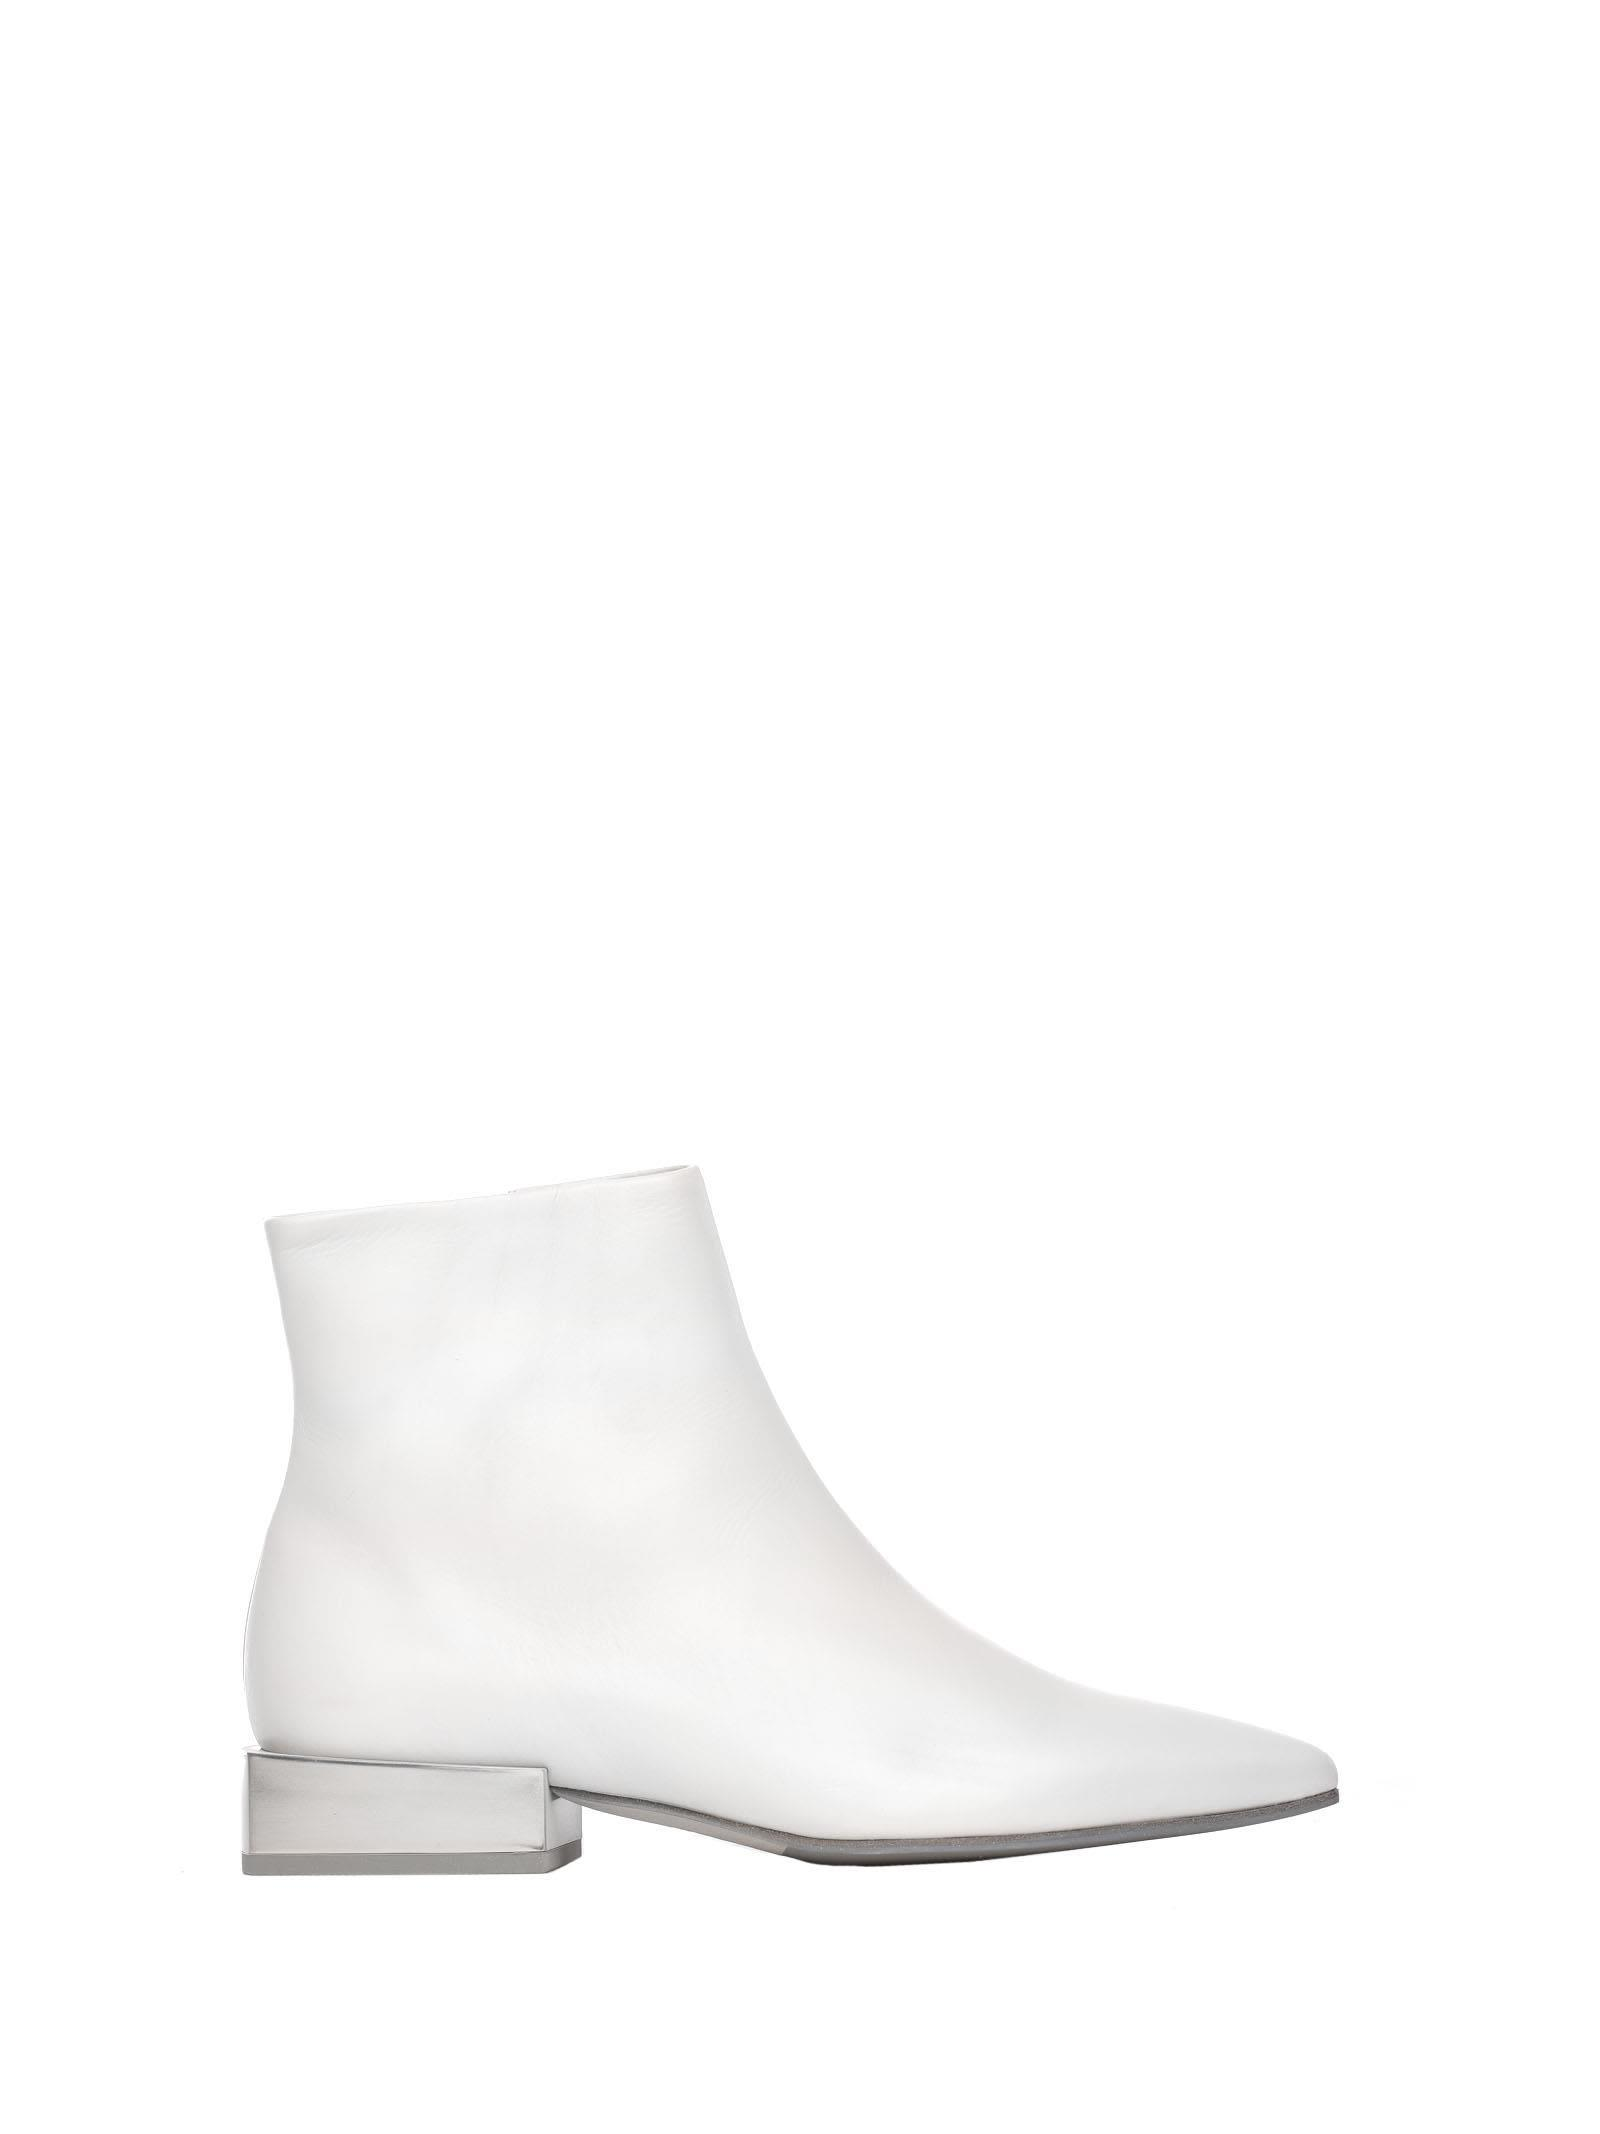 Leather Heeled Ankle Boots With Metallic Block Heel in Bianco